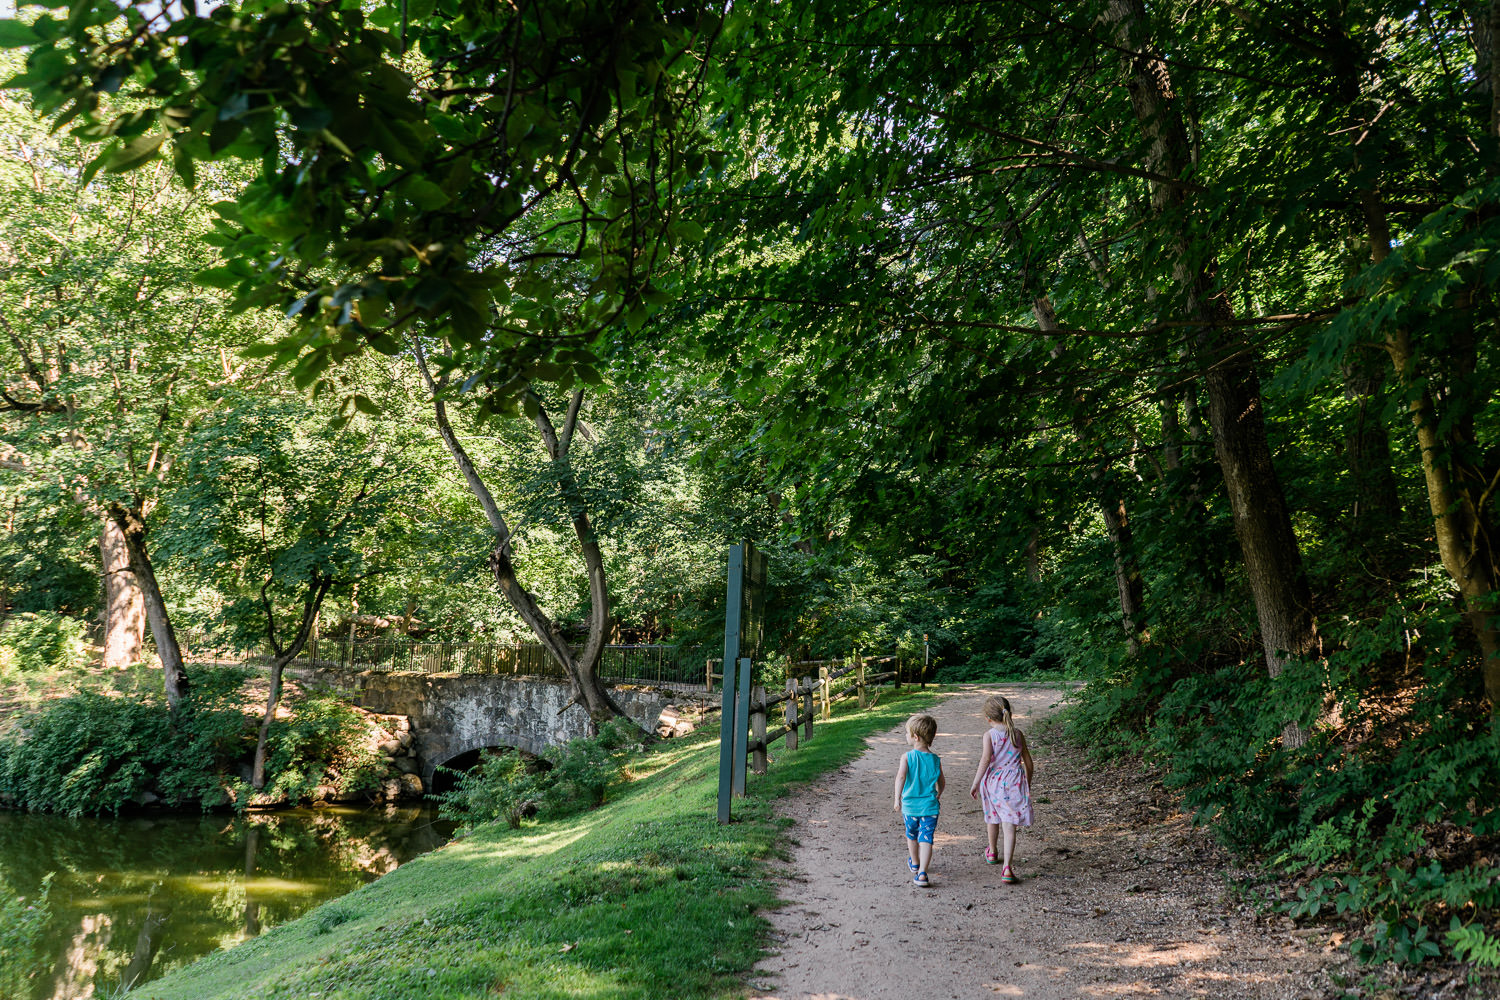 A boy and girl walk down a trail together.